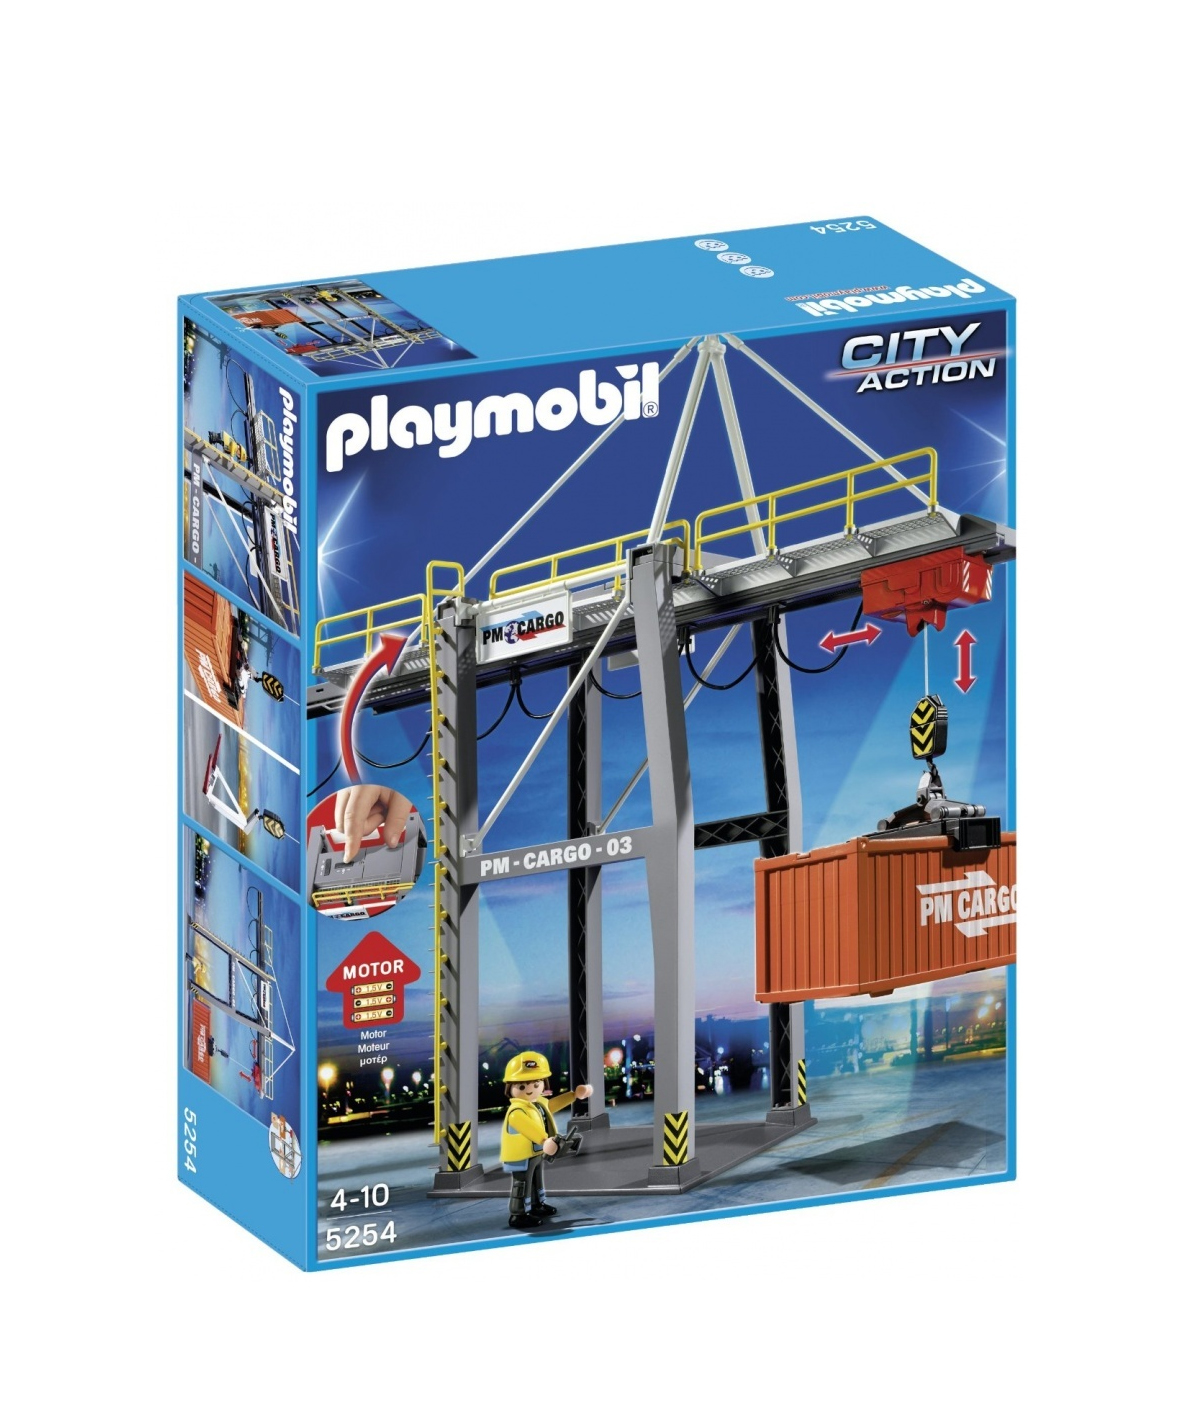 Playmobil Electrical Loading Terminal Construction Toys 5254